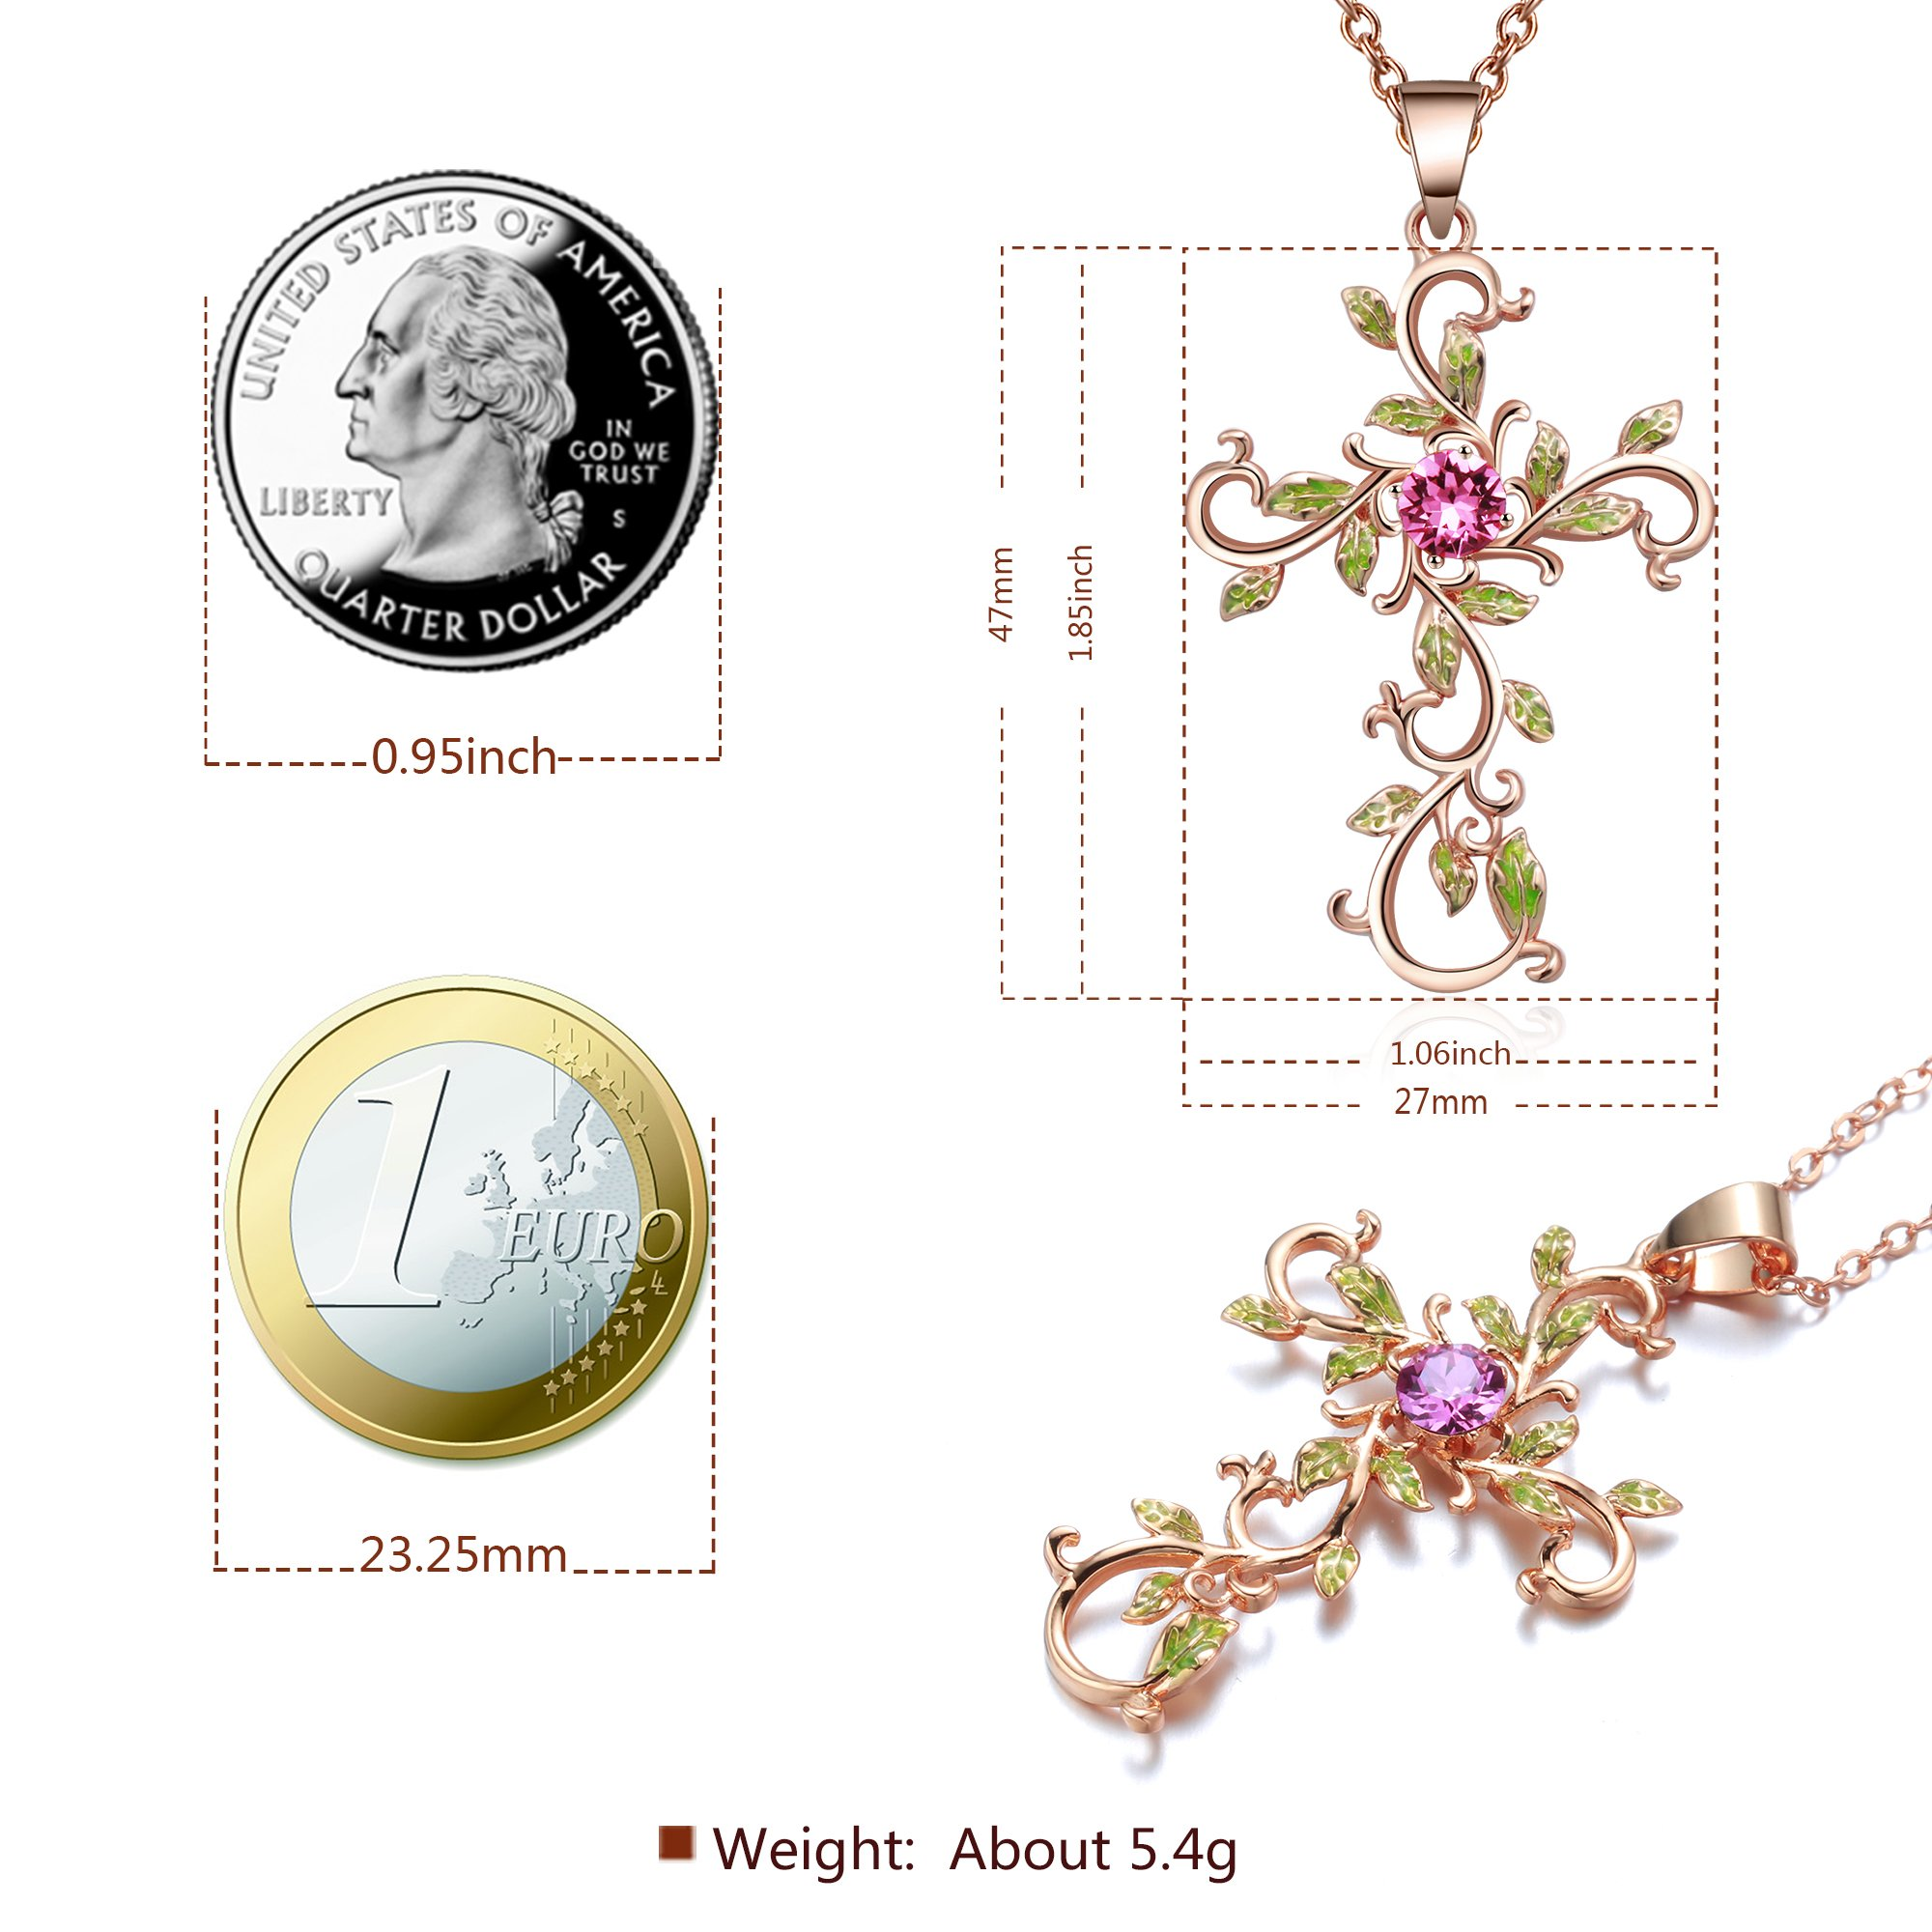 Angelady God We Trust Cross Pendant Necklace for Women Gifts,14K Gold Plated Chain Necklace, Pink Crystal from Swarovski